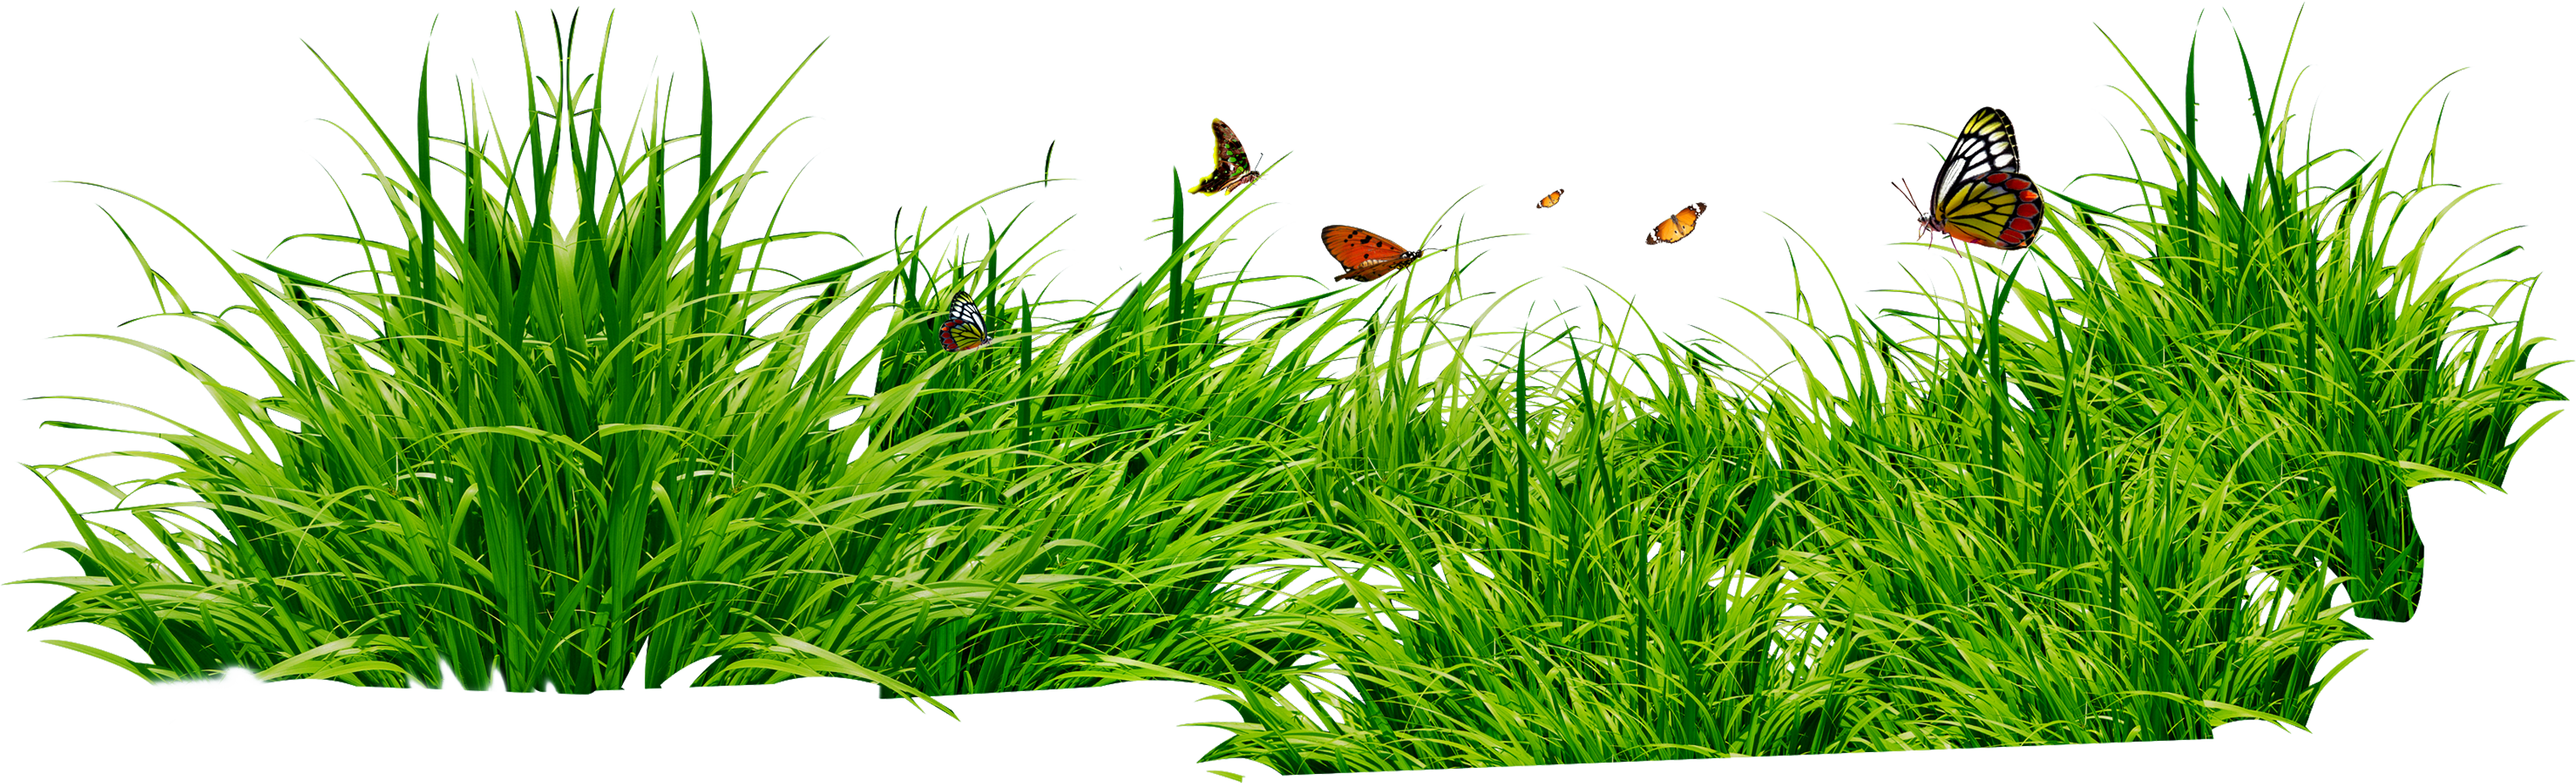 Hills clipart grass area. Png images pictures image